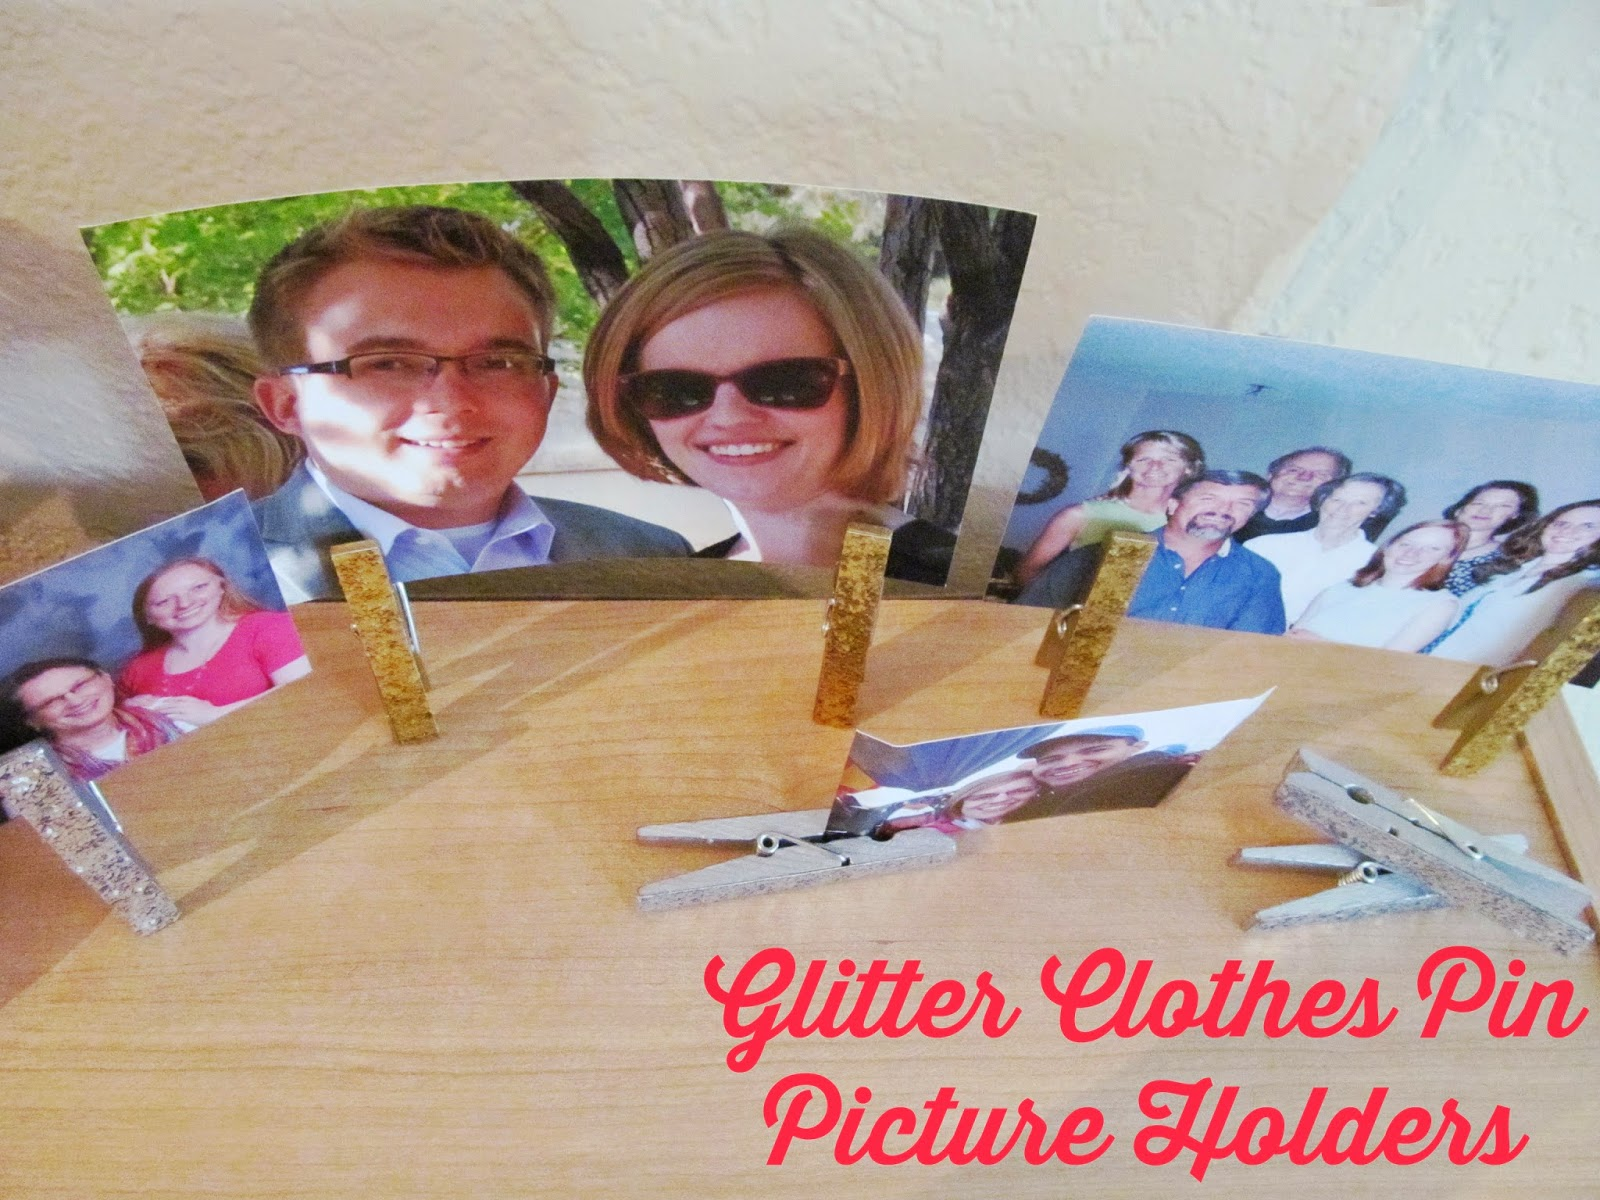 Glitter Clothes Pin Picture Holders